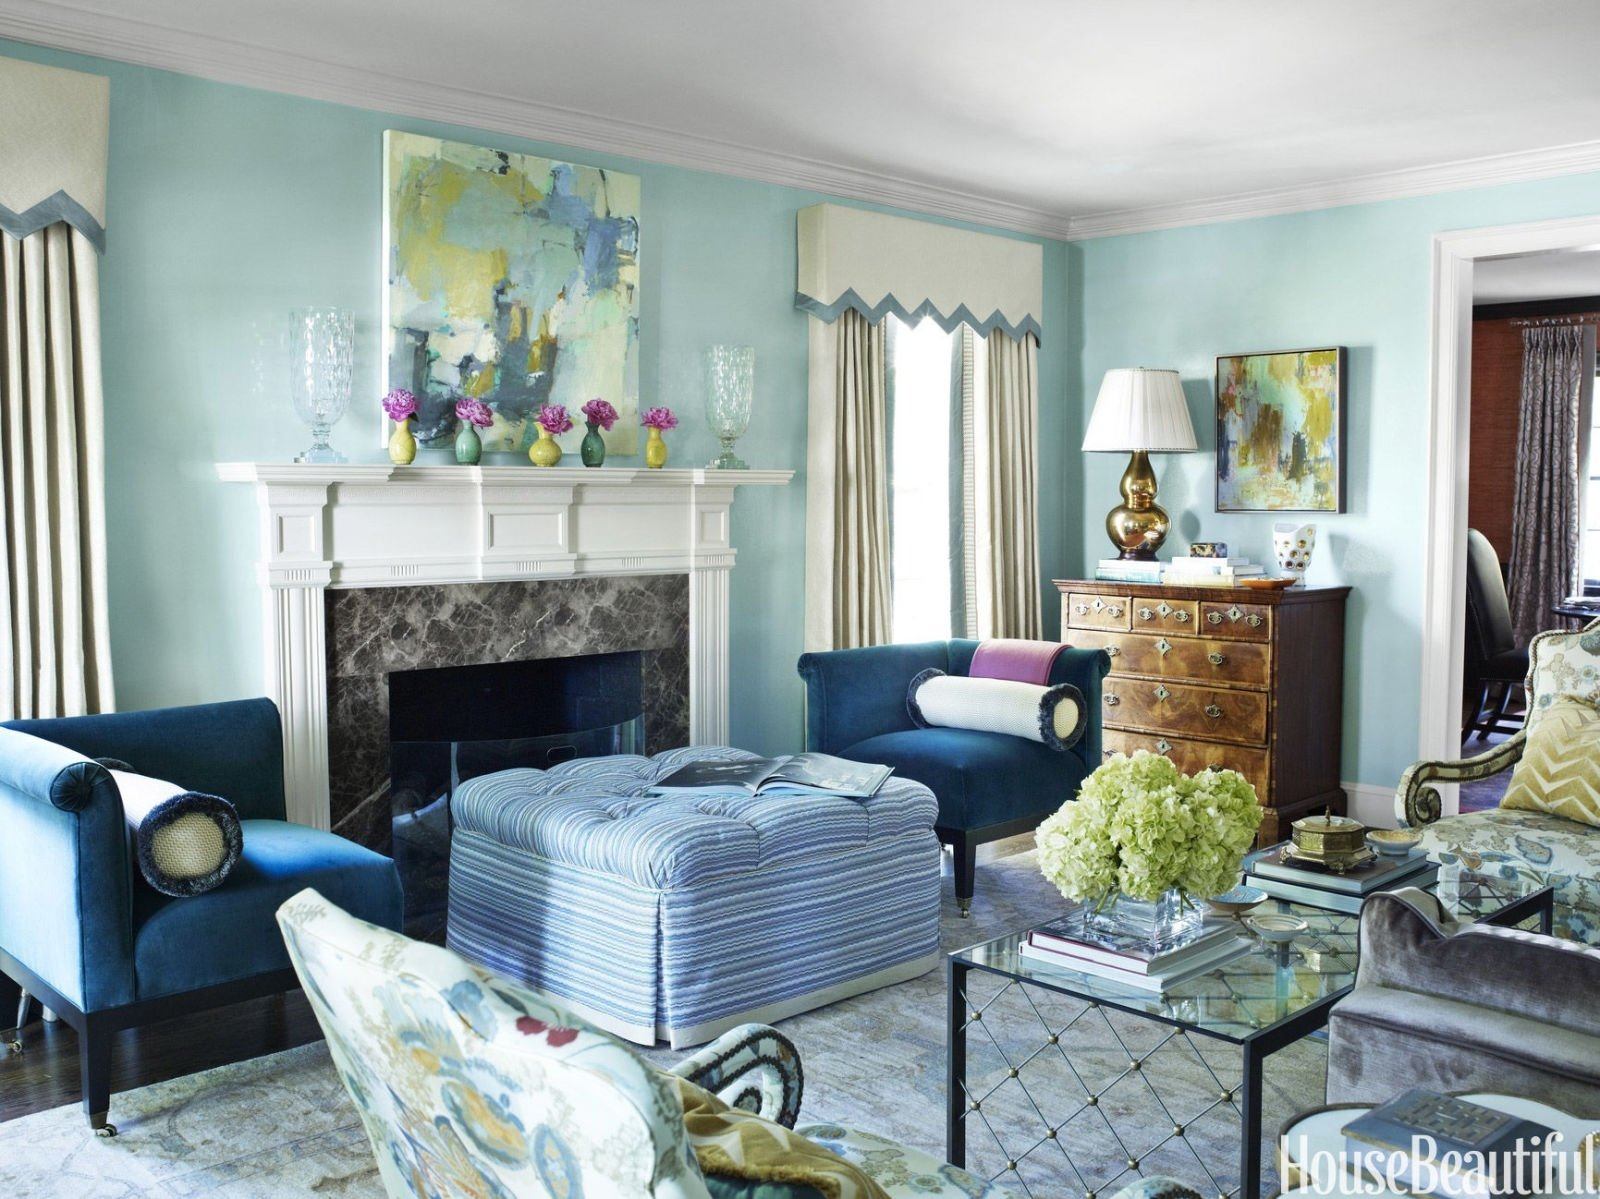 10 Elegant Living Room Color Ideas For Small Spaces best dining room color home decor interior exterior to design simple 2020